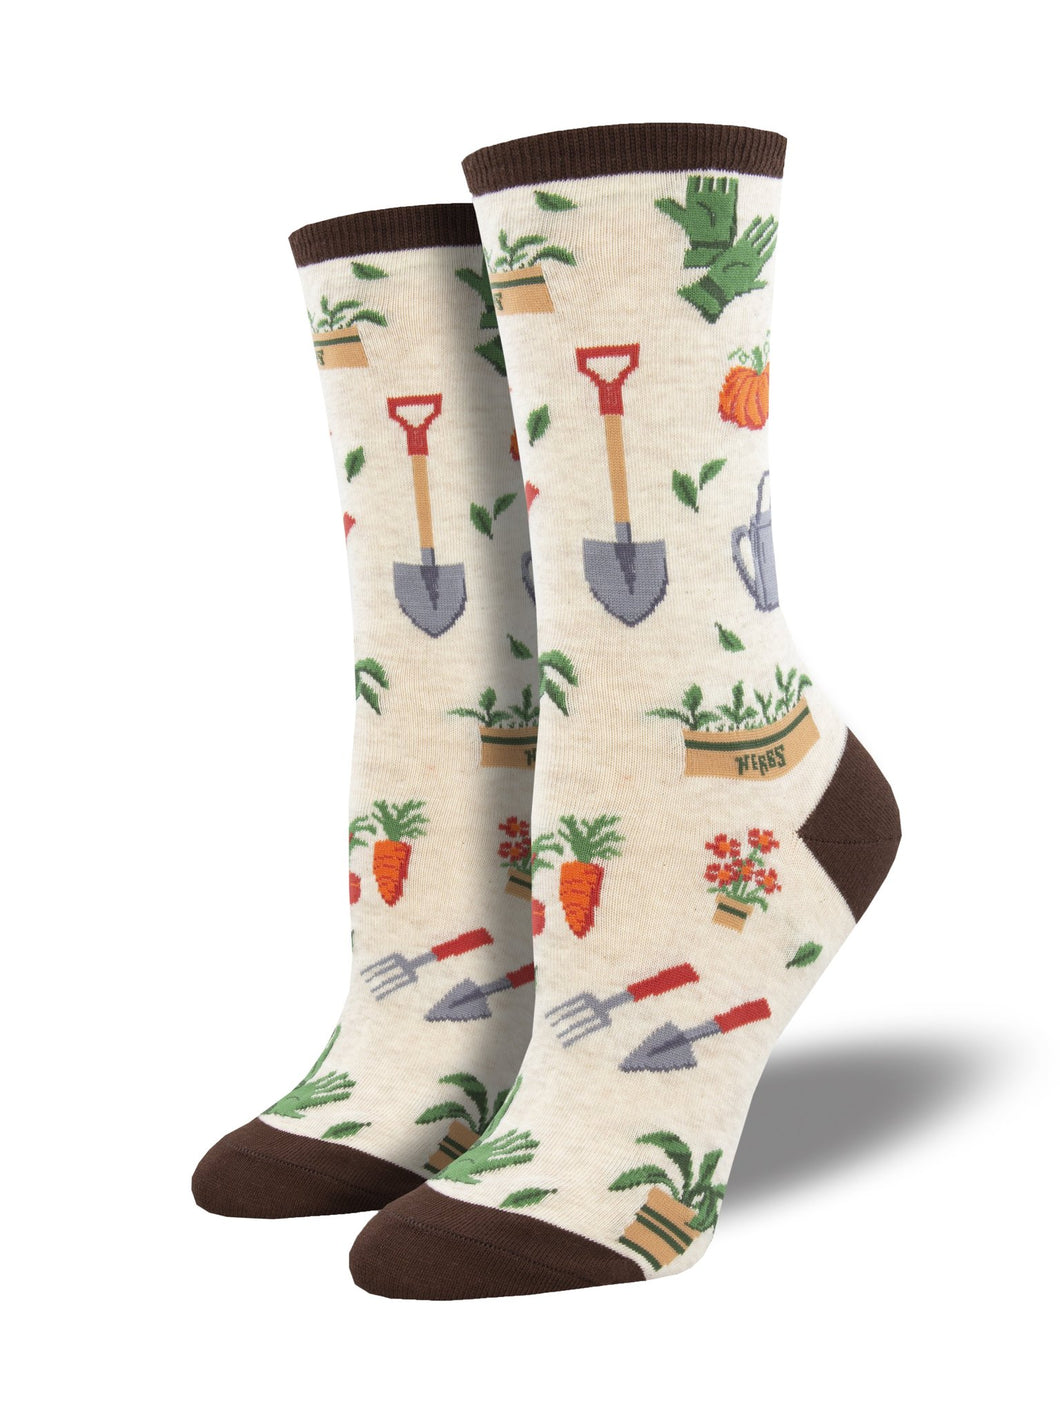 Hoe Down | Women's Size Socks